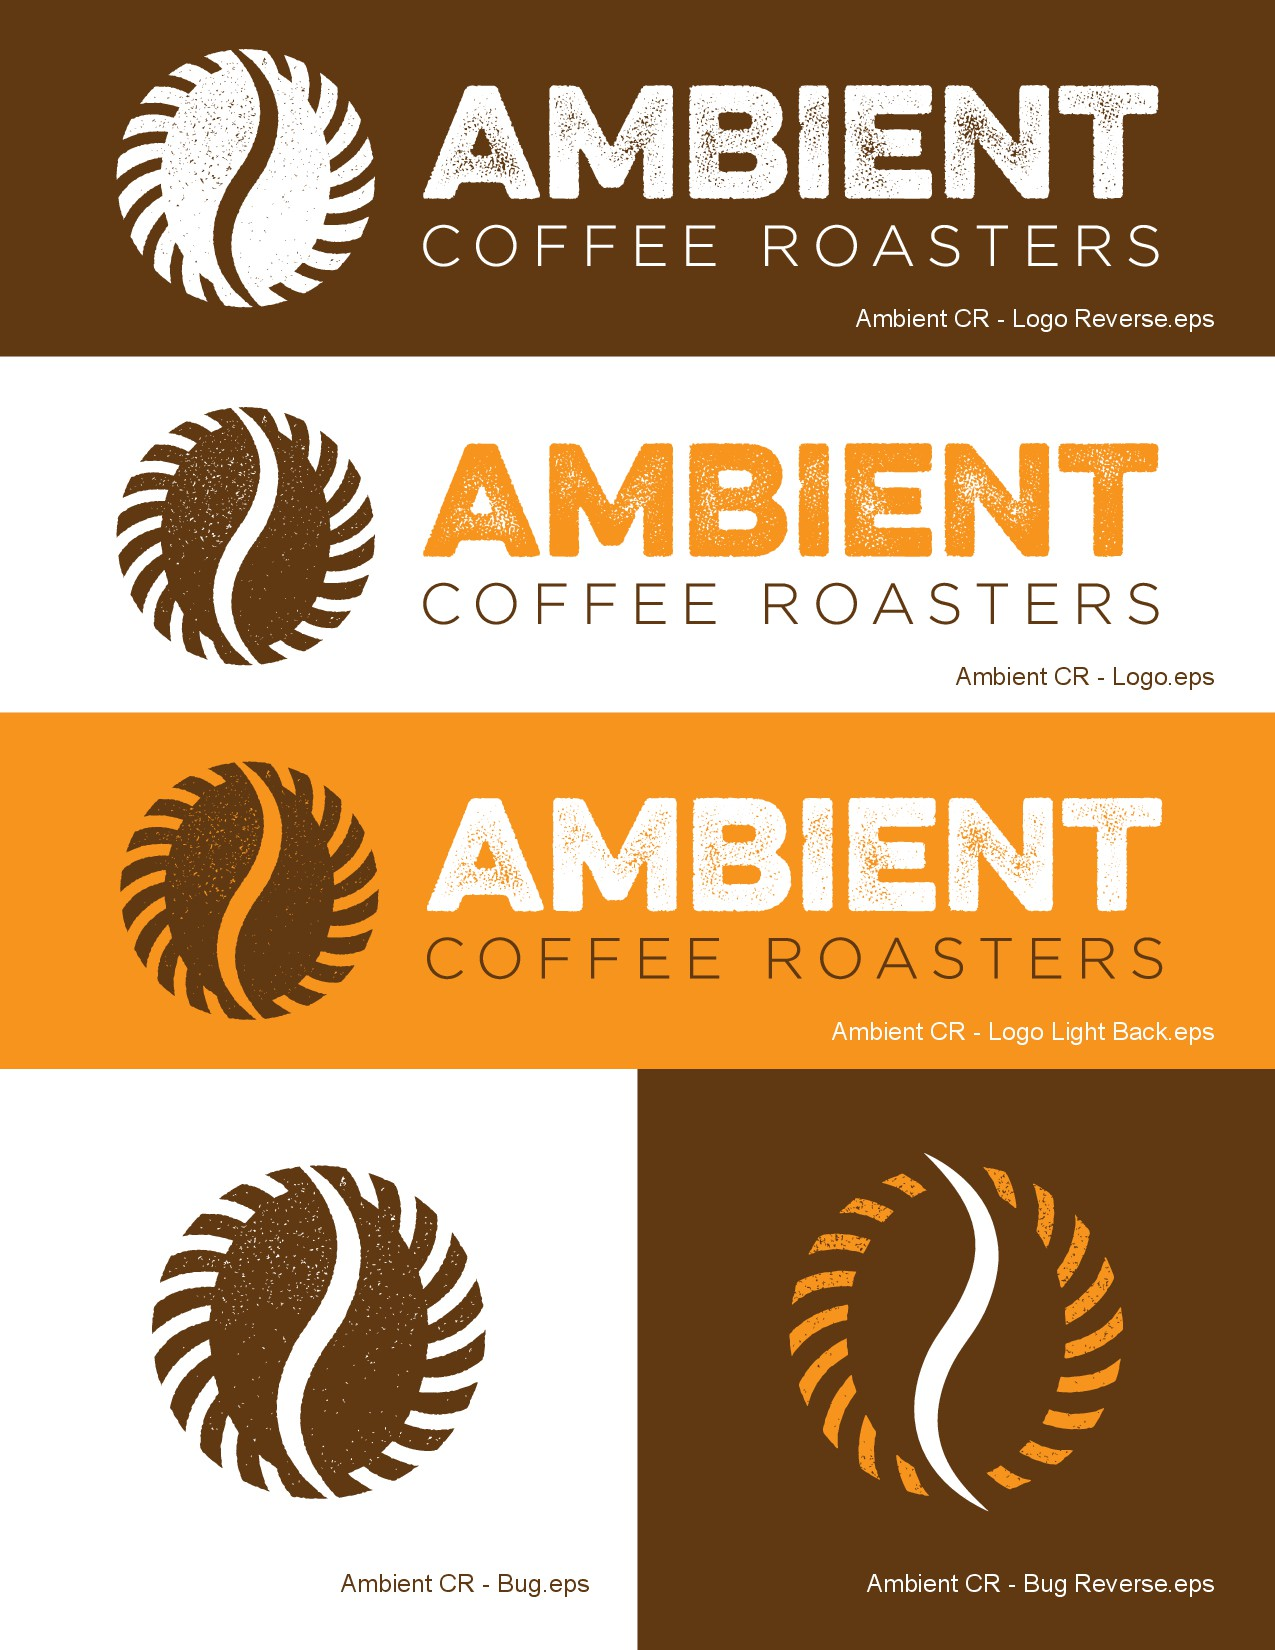 Please come up with an innovative design for my new coffee roasting business.